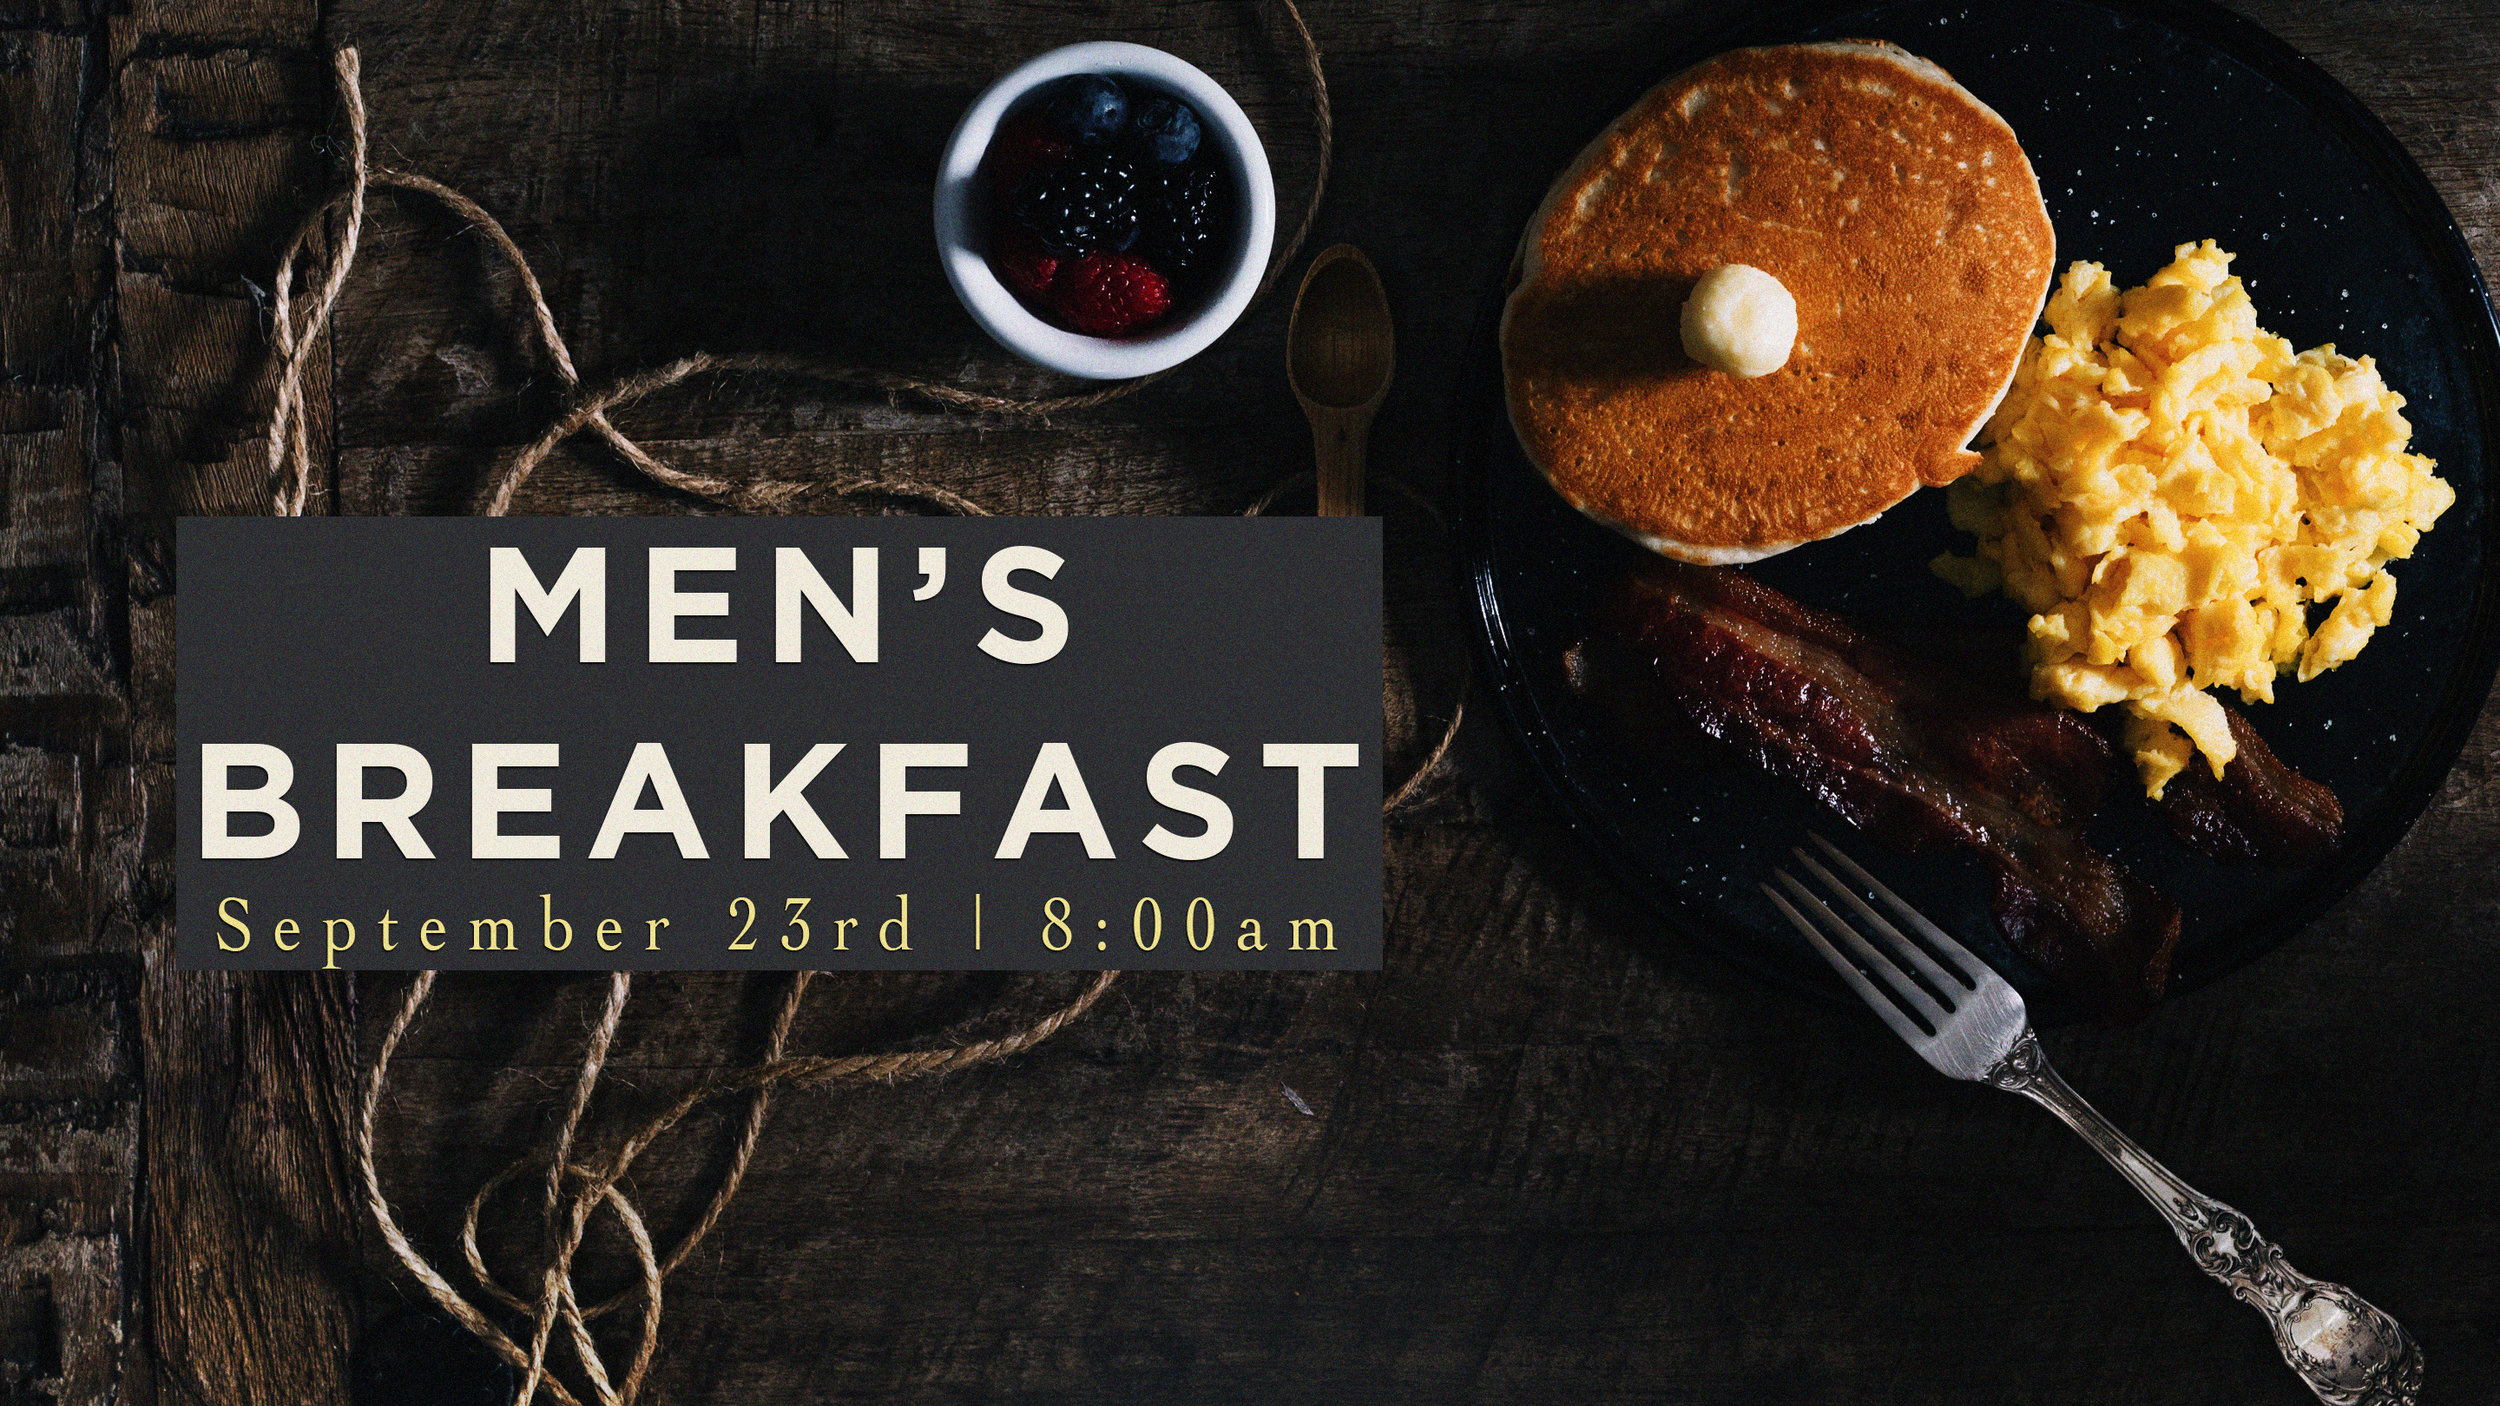 Men's Breakfast    September 23rd | 8 a.m.   Freedom Men, we're having our next men's breakfast Saturday, September 23rd at 8:00 a.m. in the Student Center Cafe. We'll eat some great food, have an awesome time of fellowship and hear a challenging word. We look forward to seeing you there!